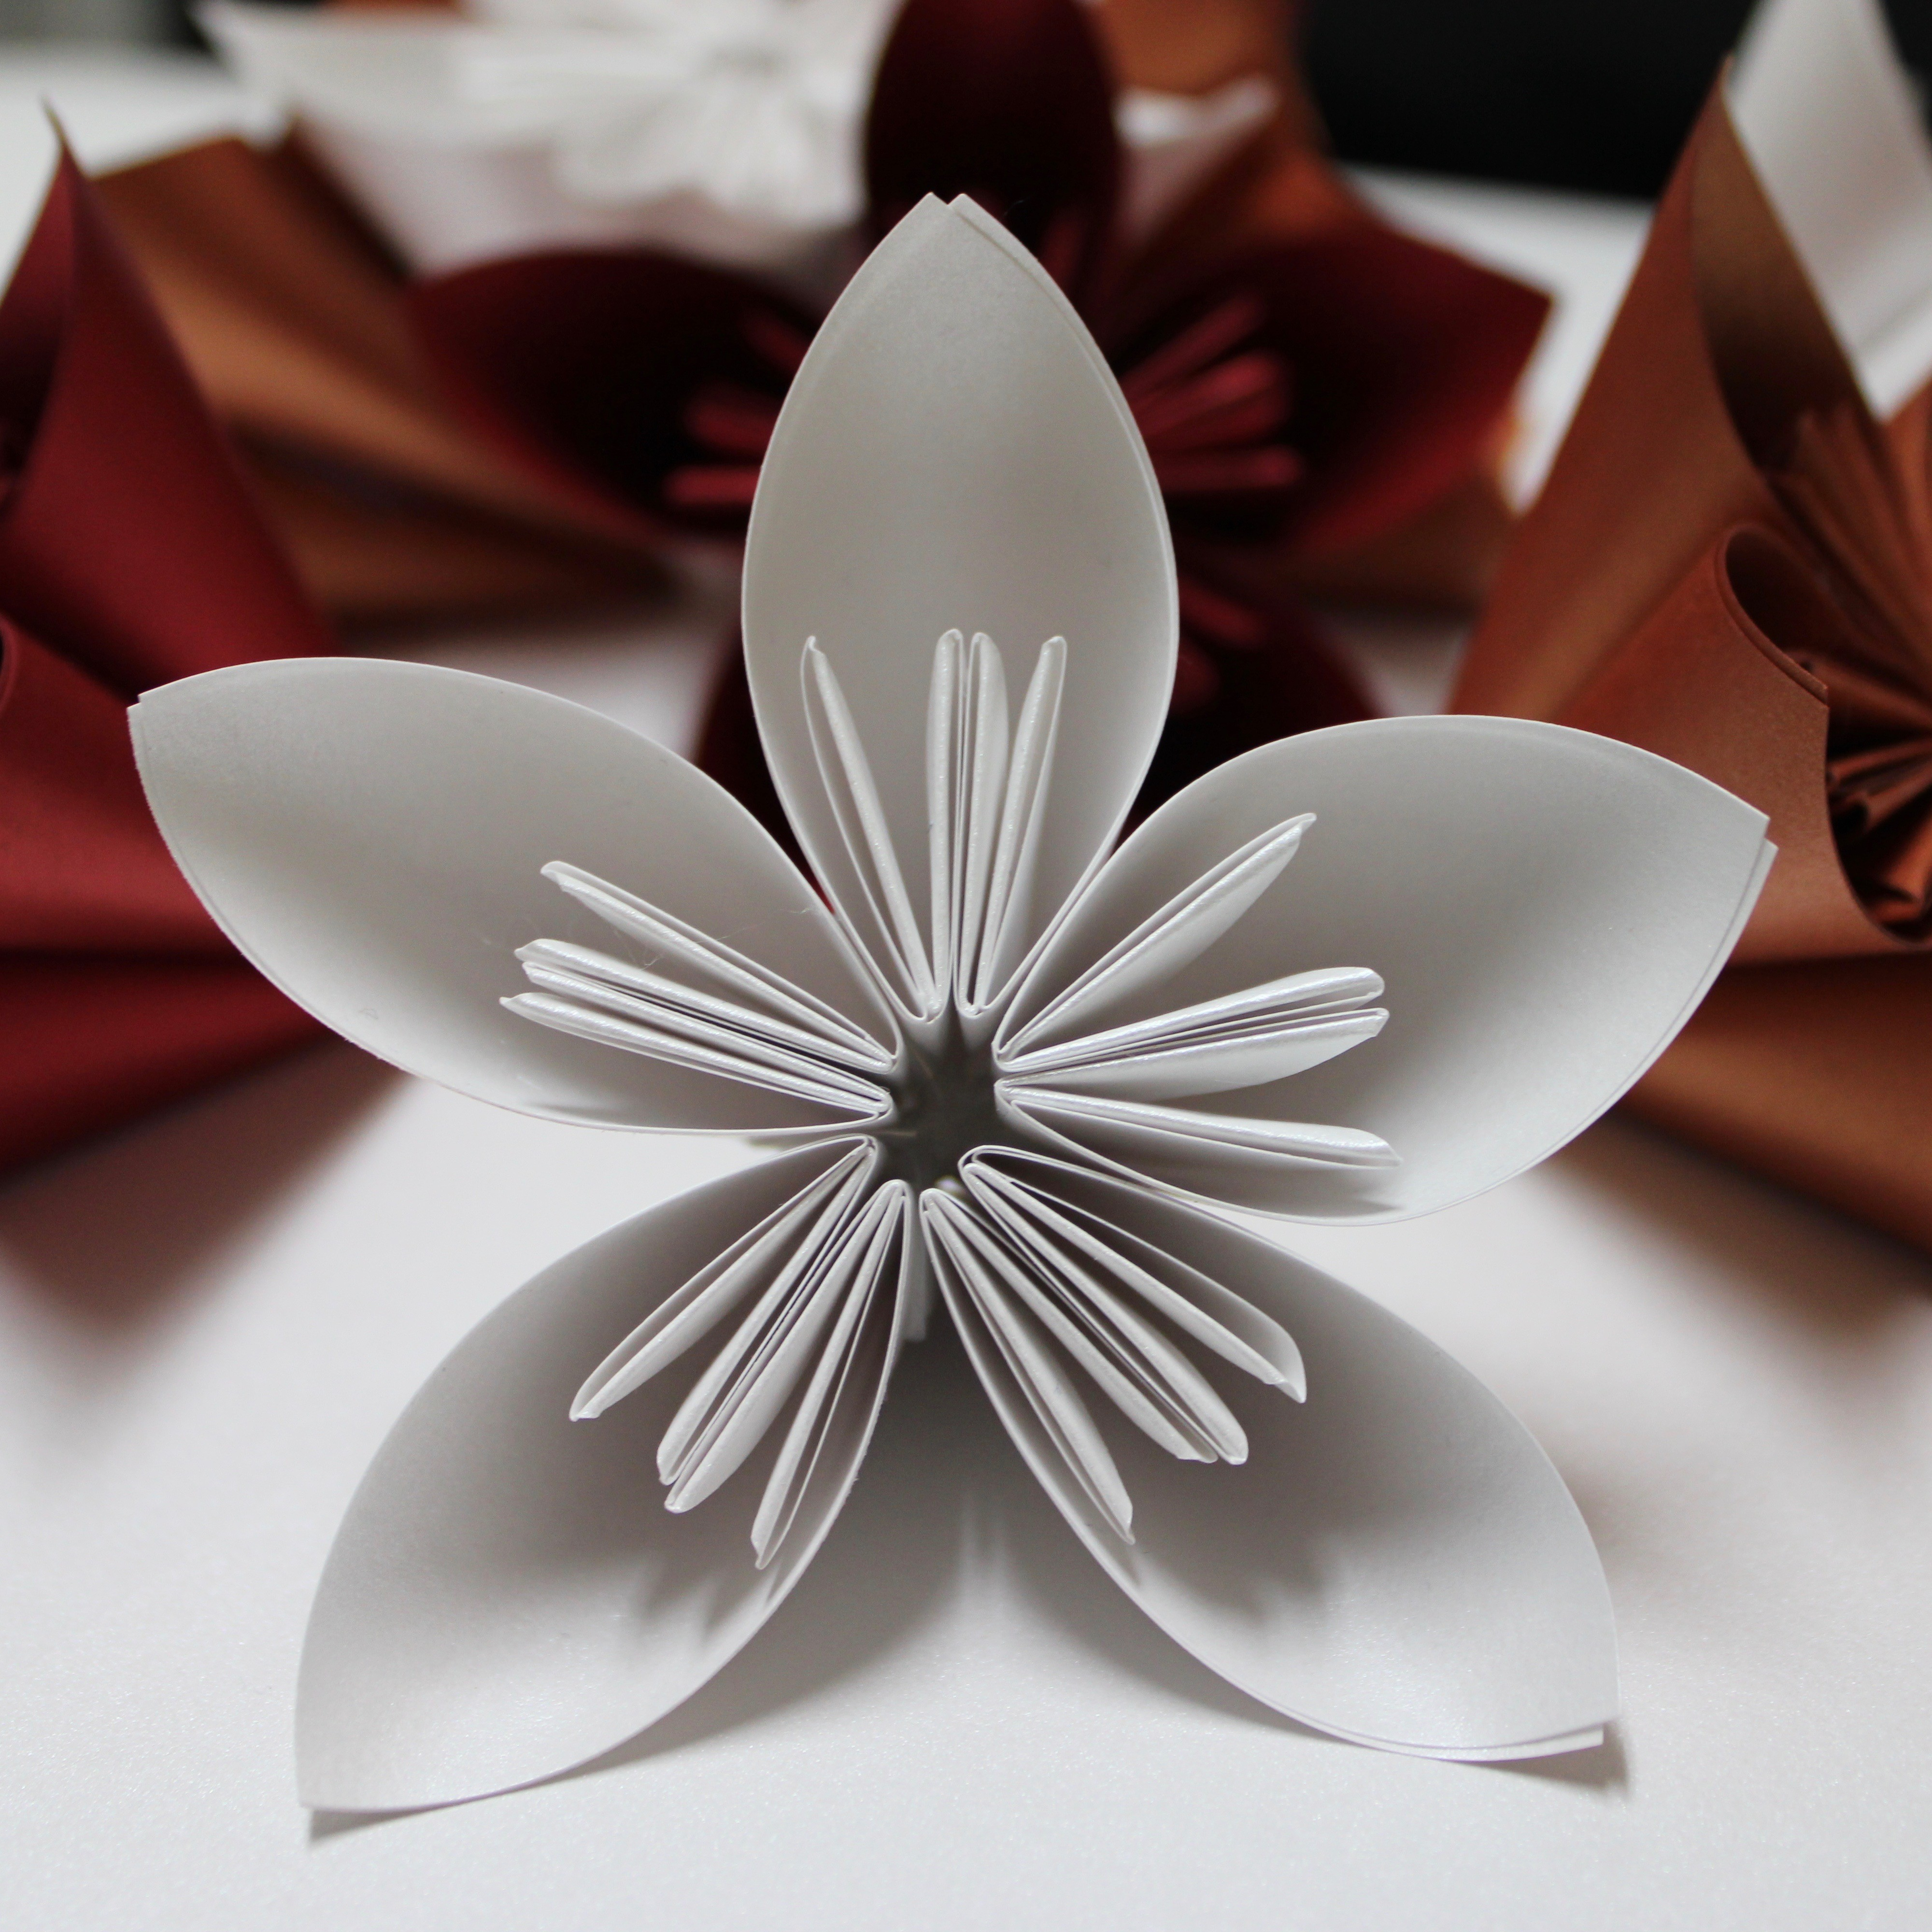 PaperPapersPaperPoinsettaFlower08